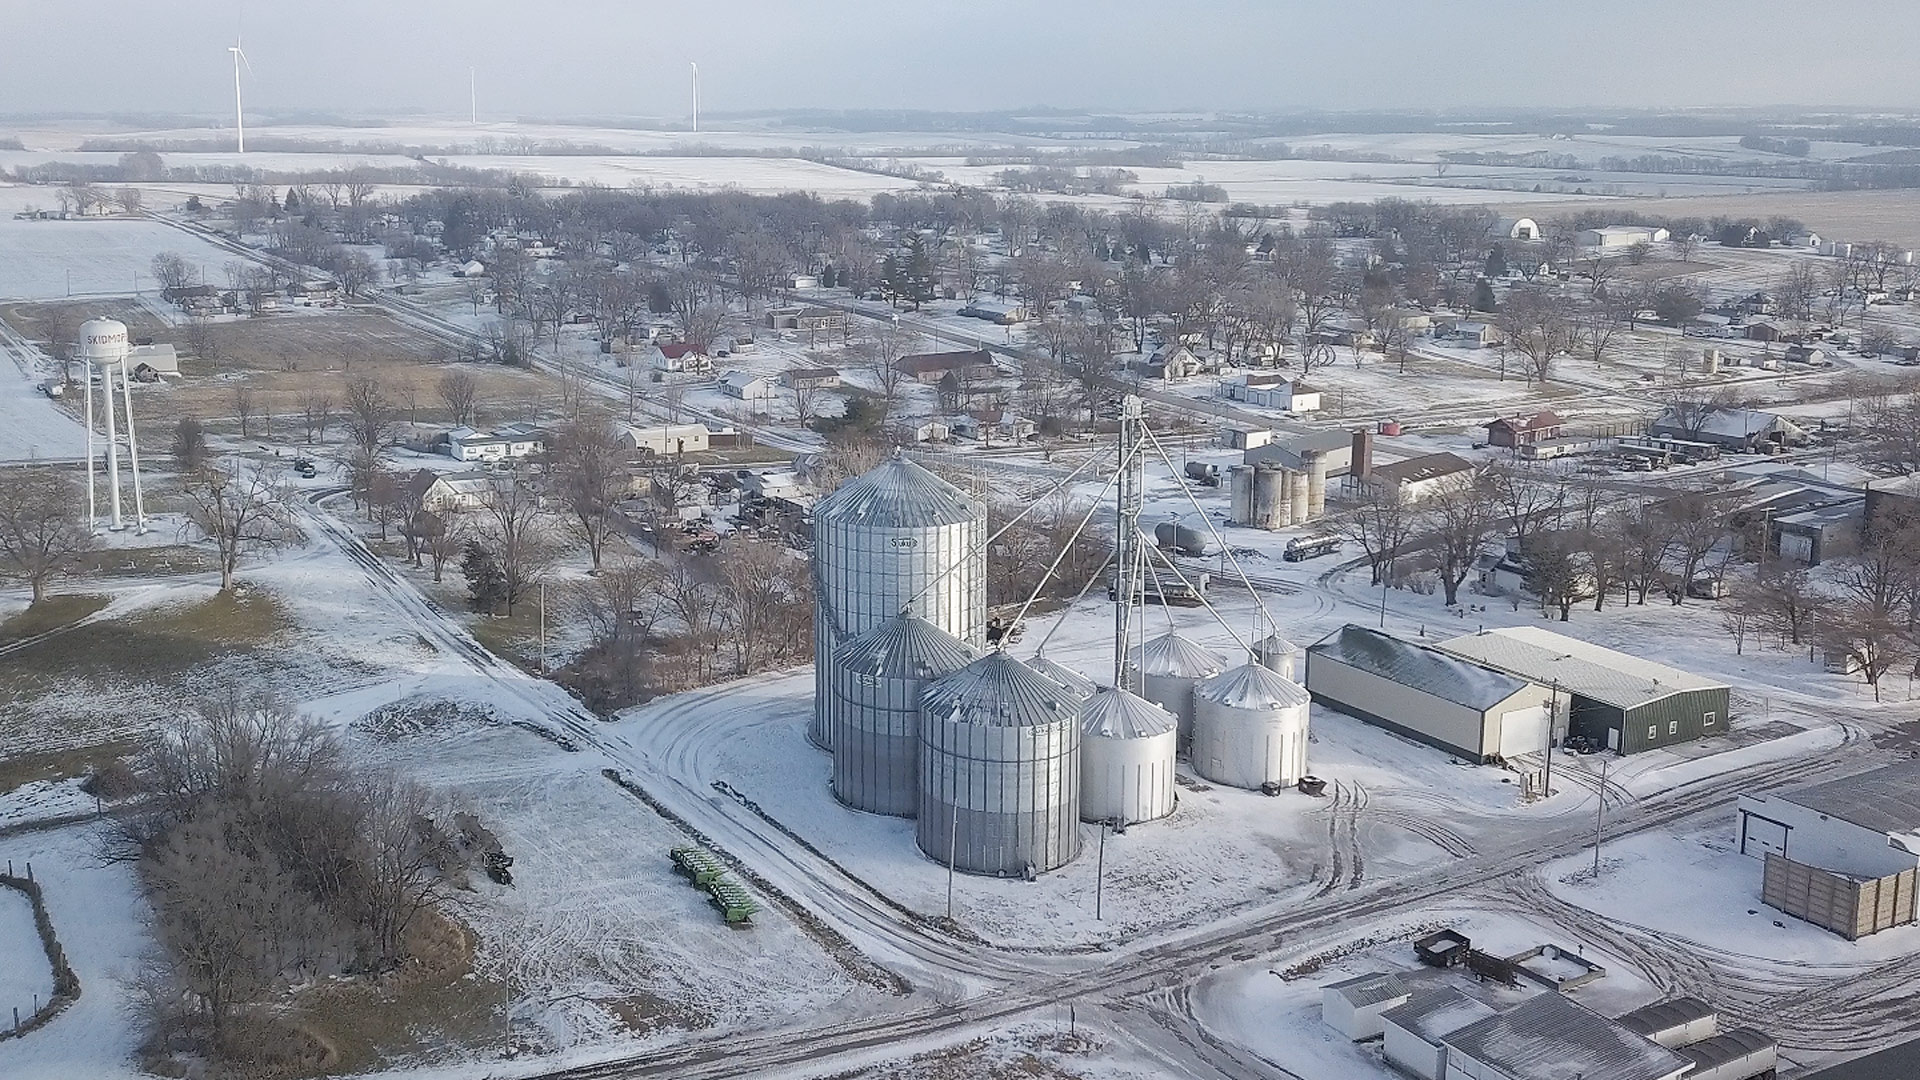 Aerial view of Skidmore, January 2021